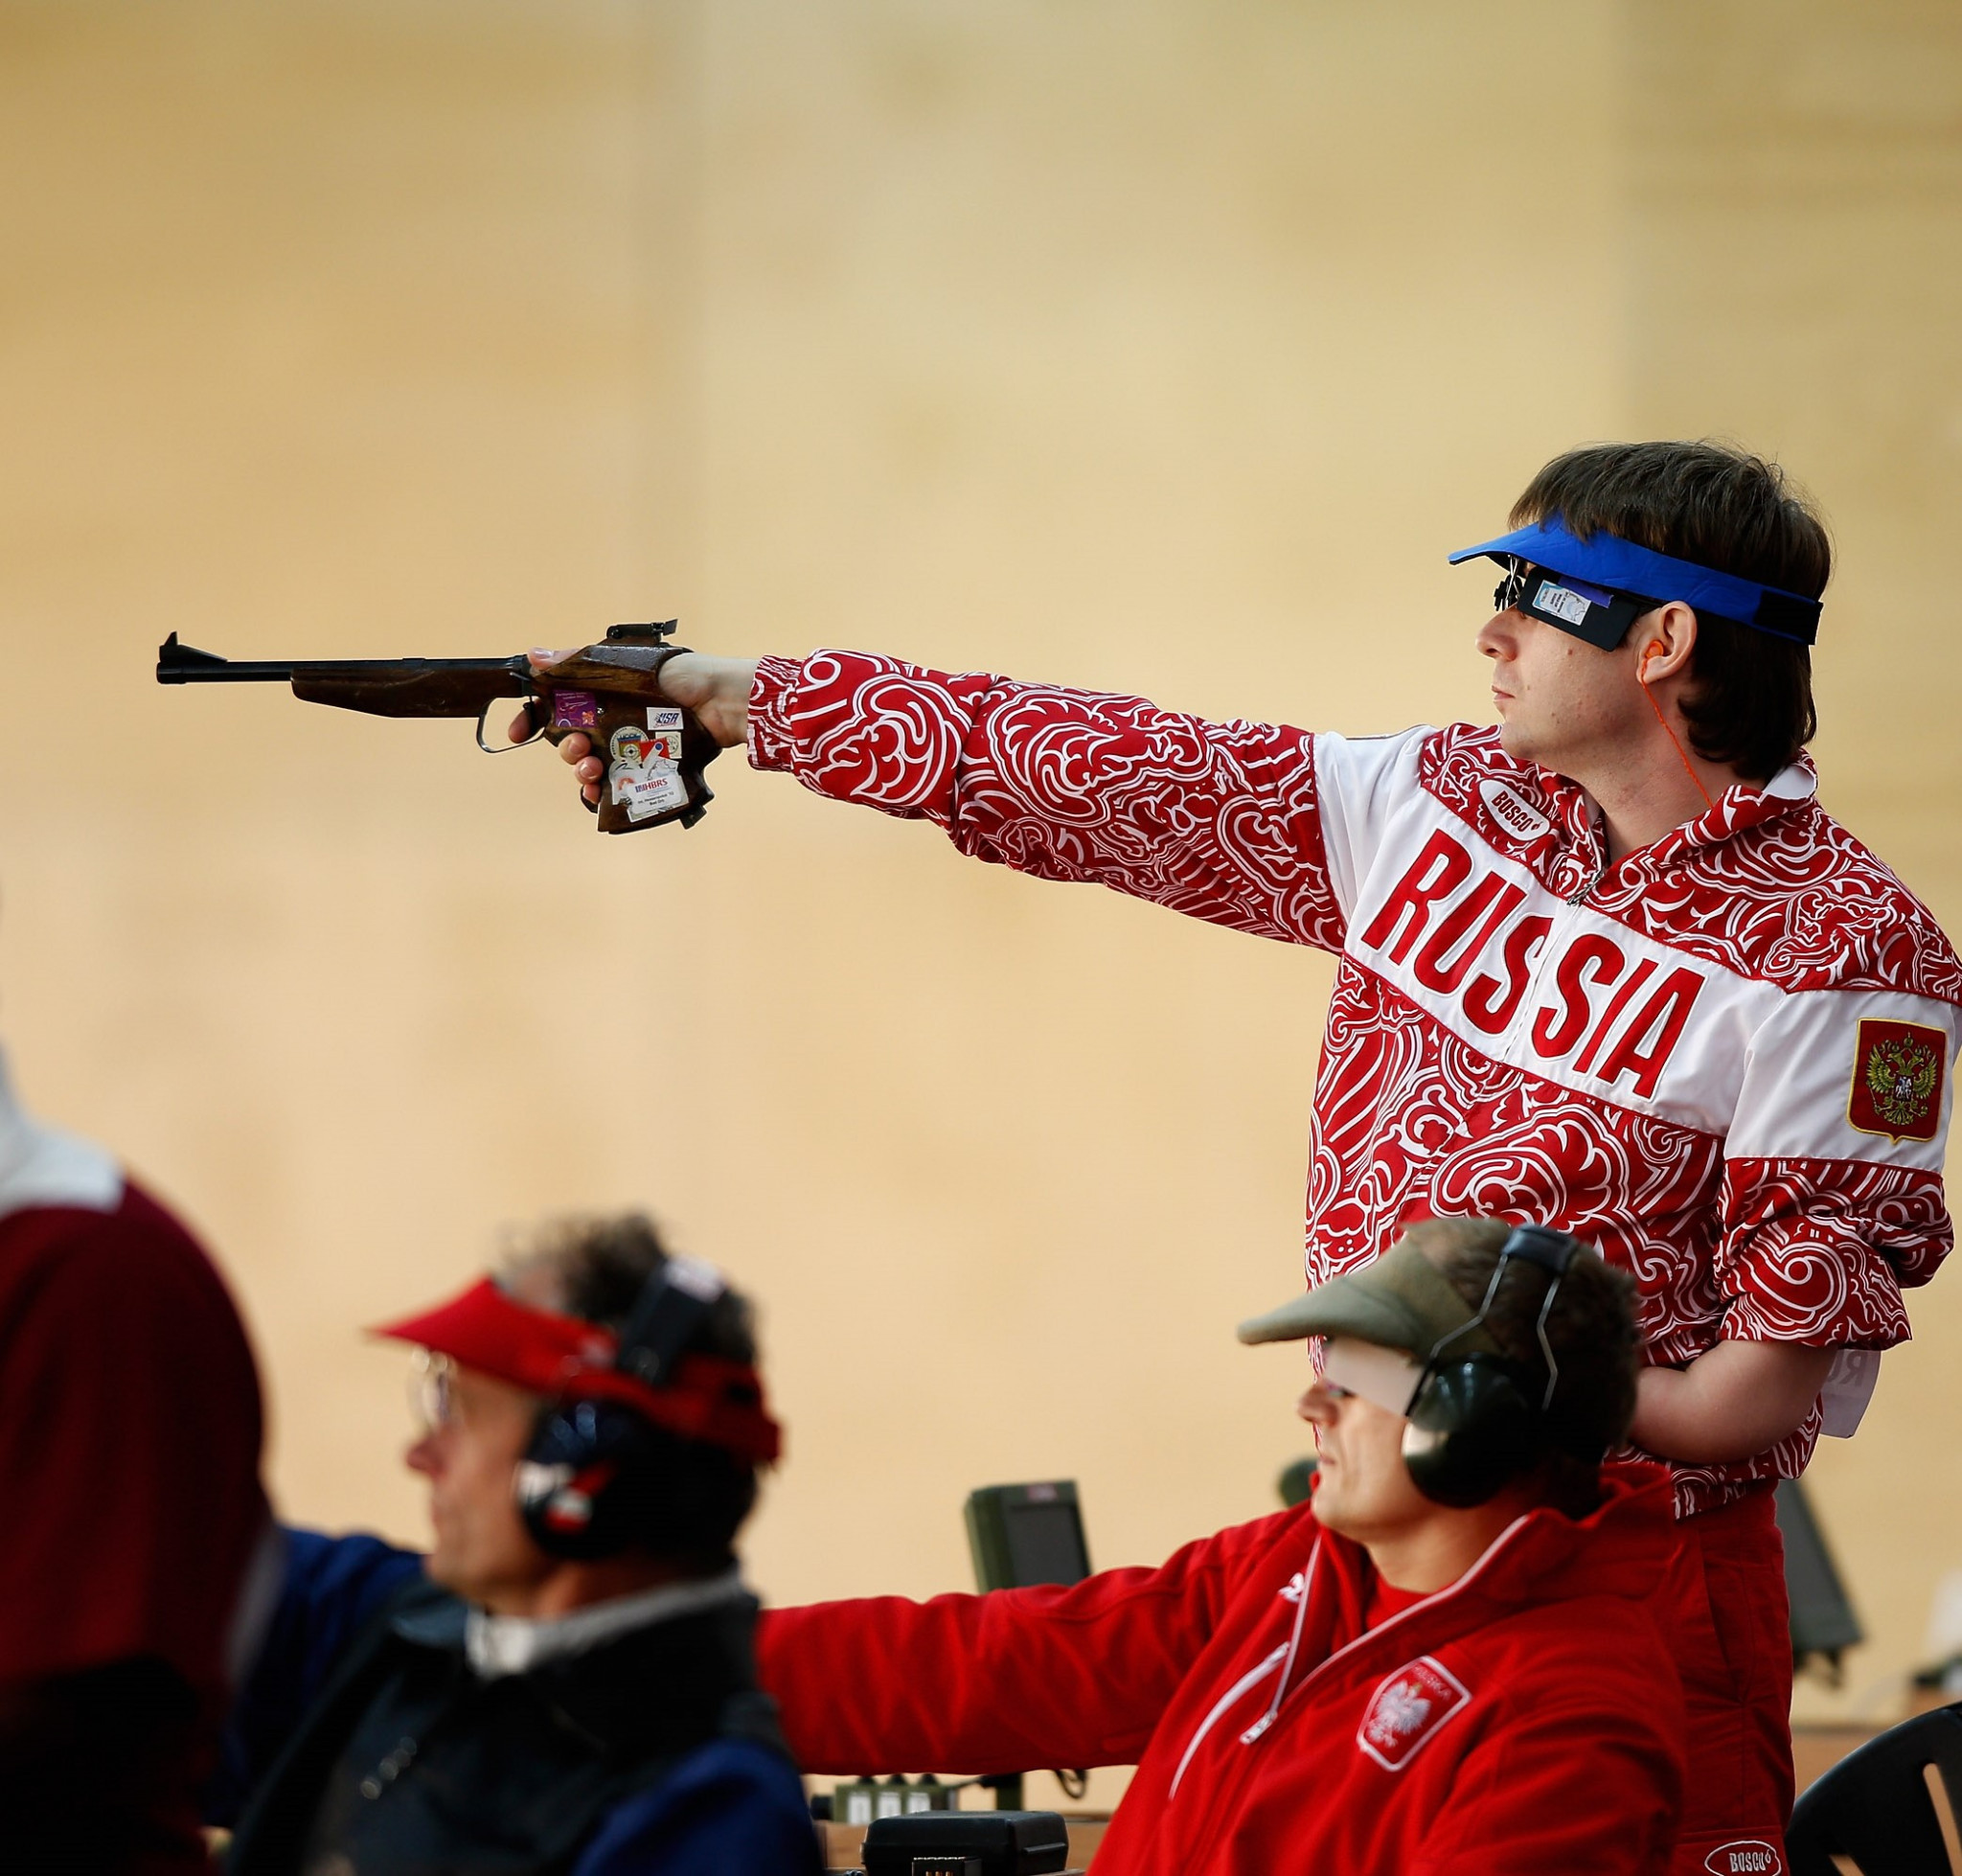 Malyshev earns gold in close final at World Shooting Para Sport World Cup in Lima